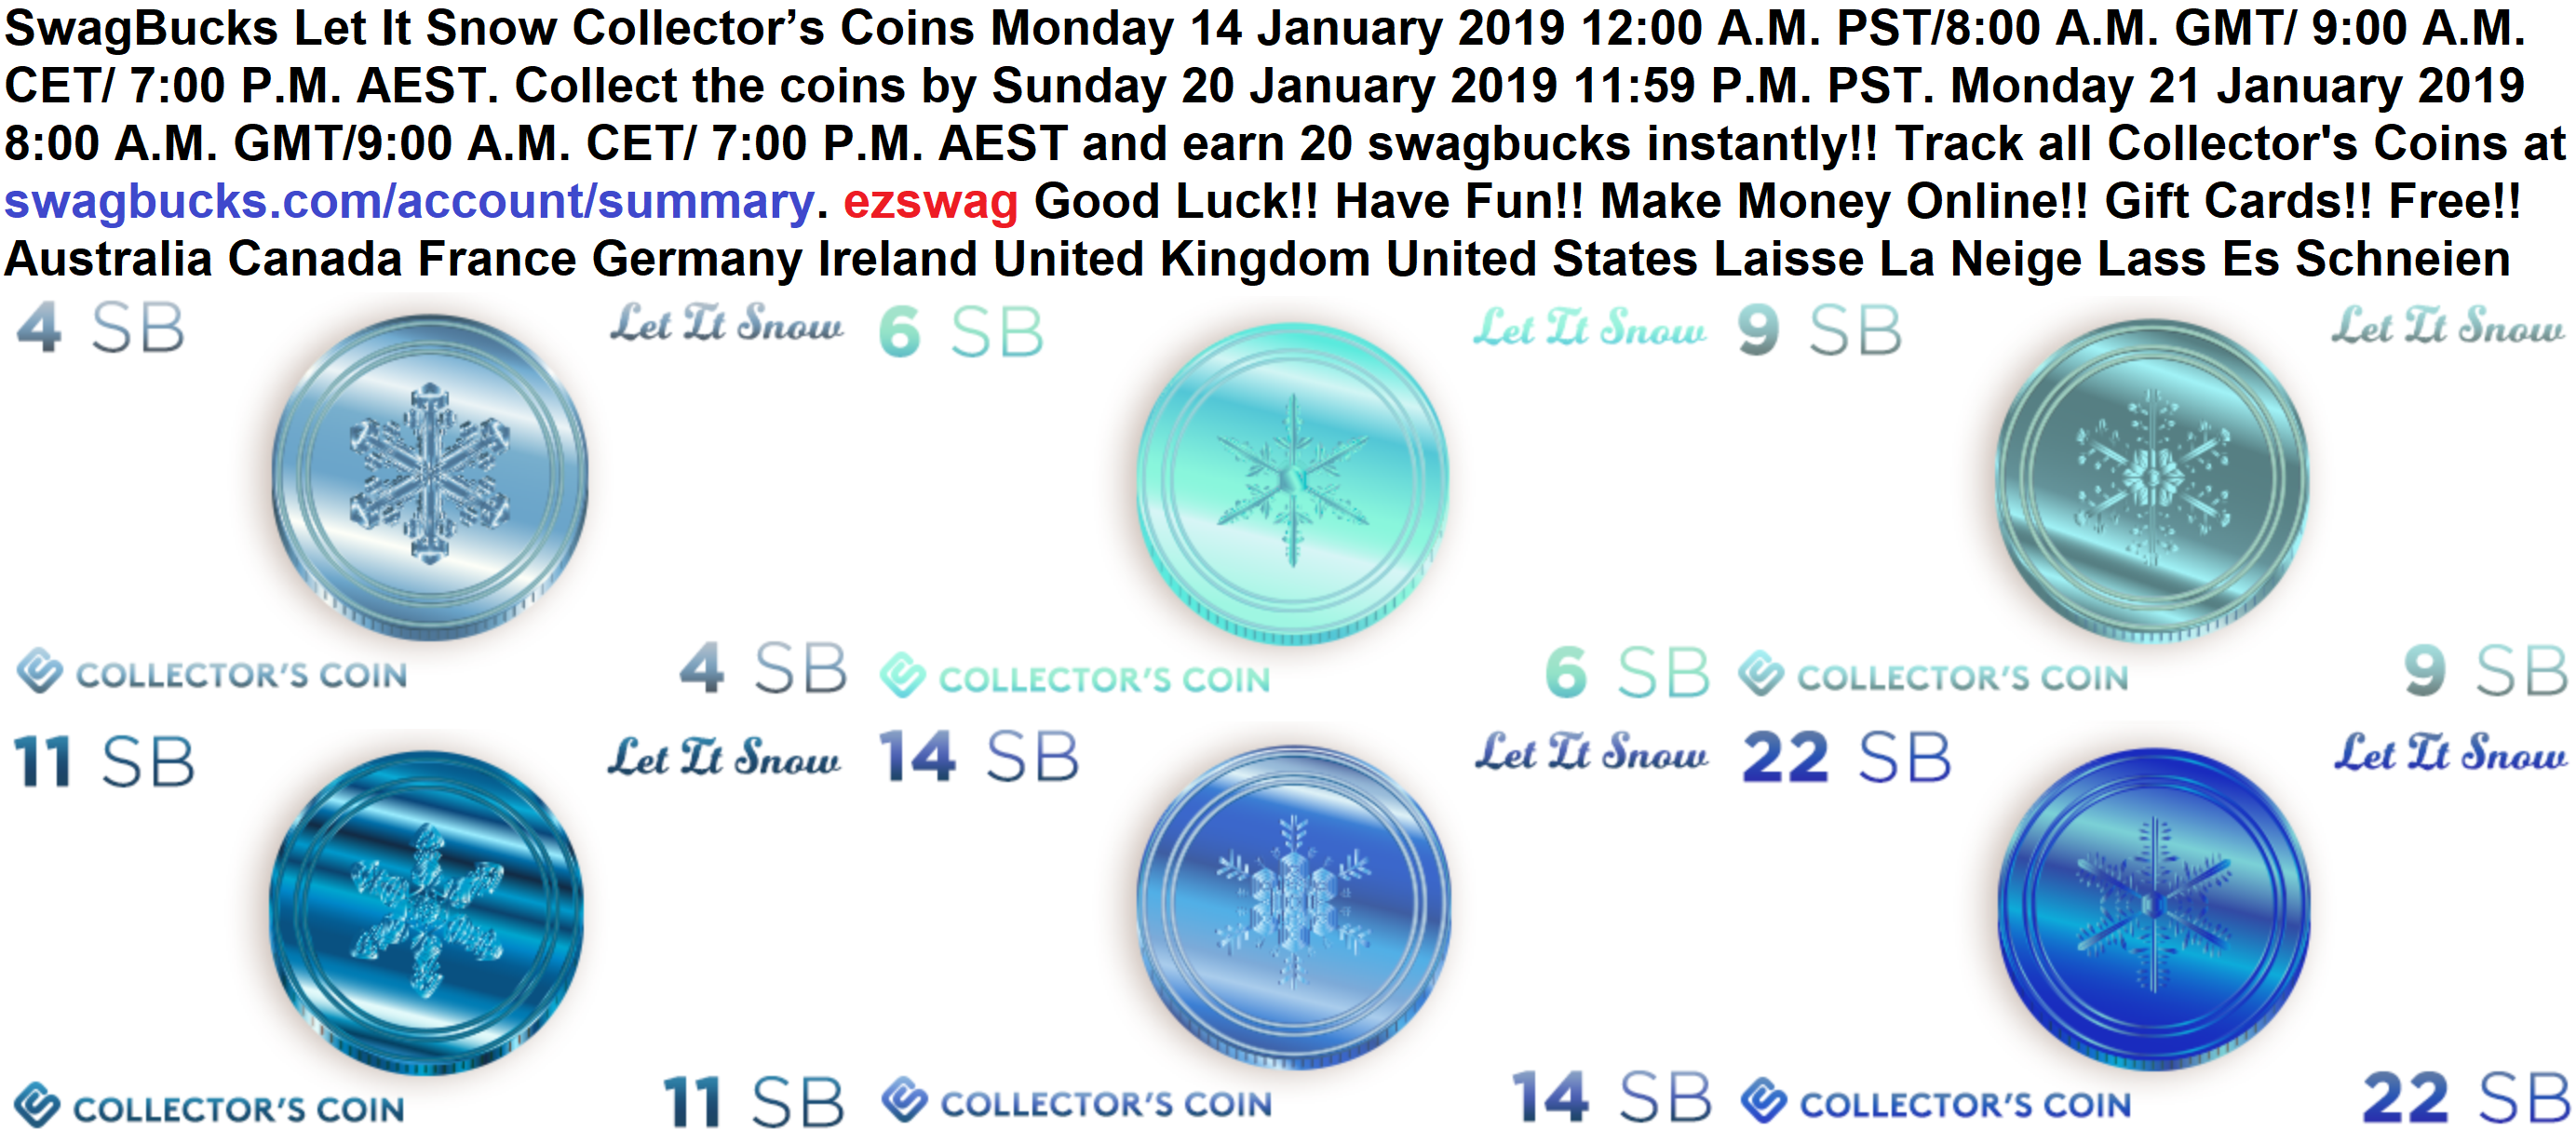 8 Pst To Aest swagbucks new #letitsnow collector's coins monday 14 january